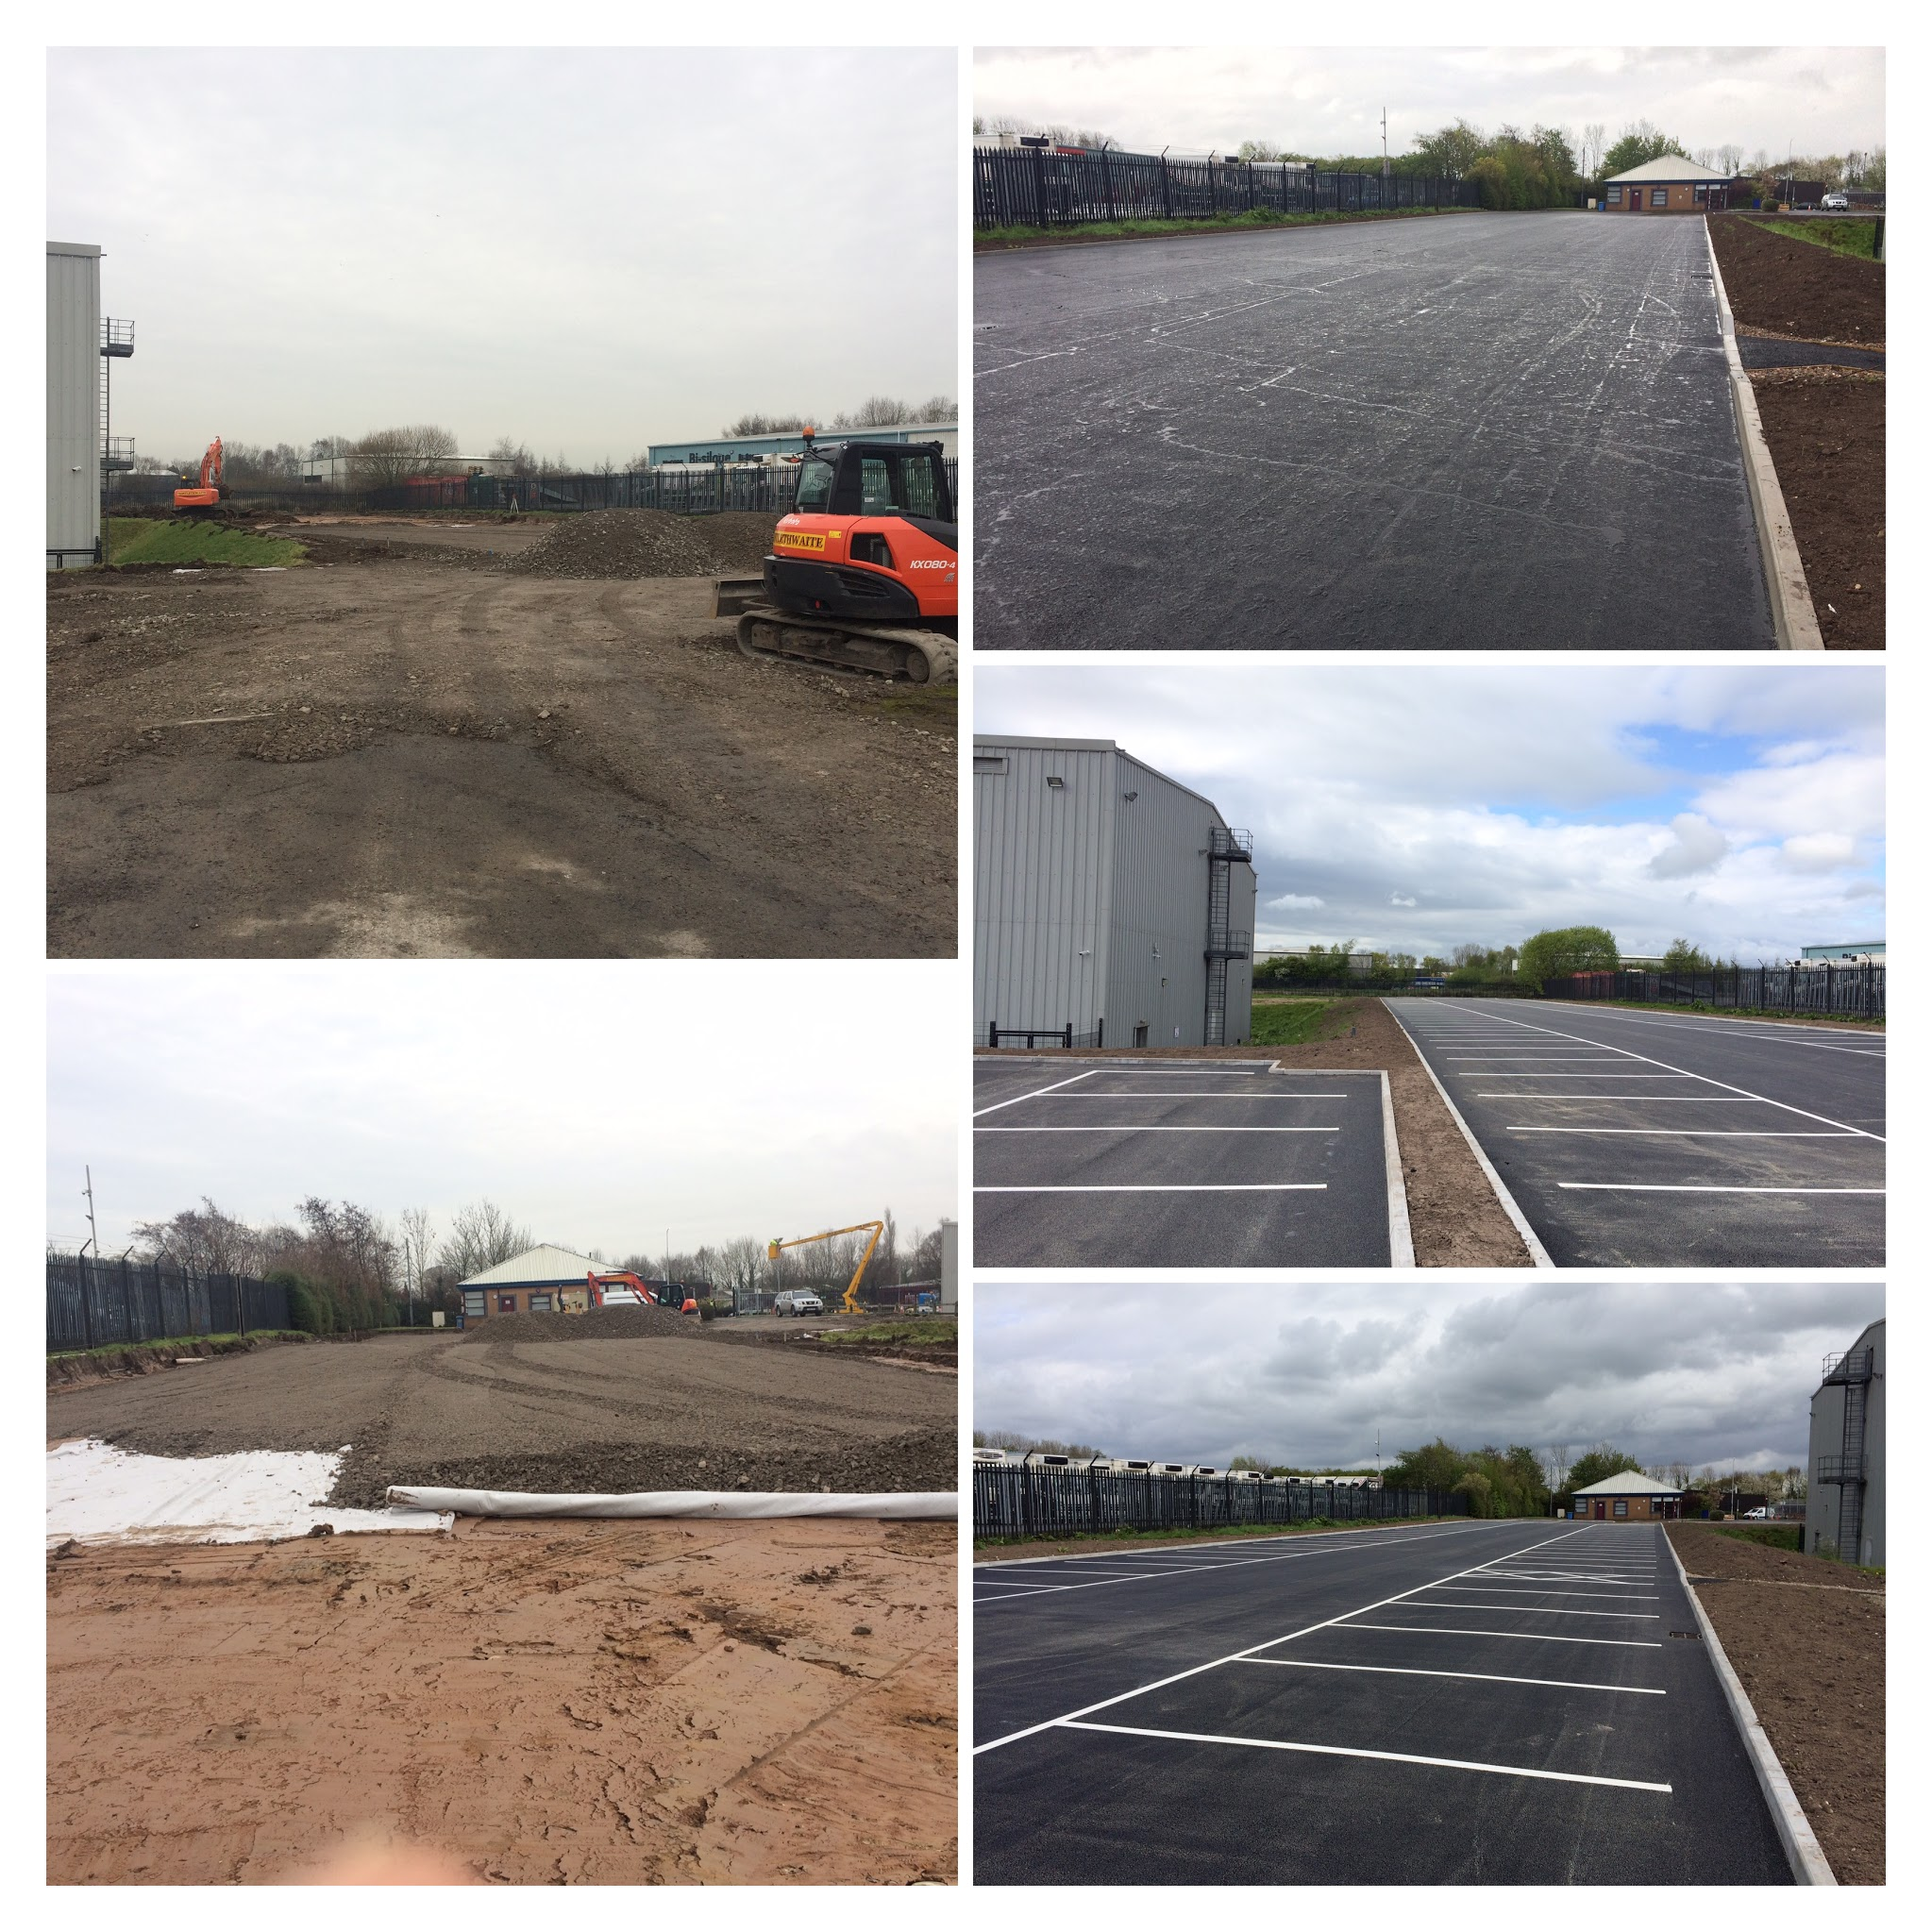 Photos of car park